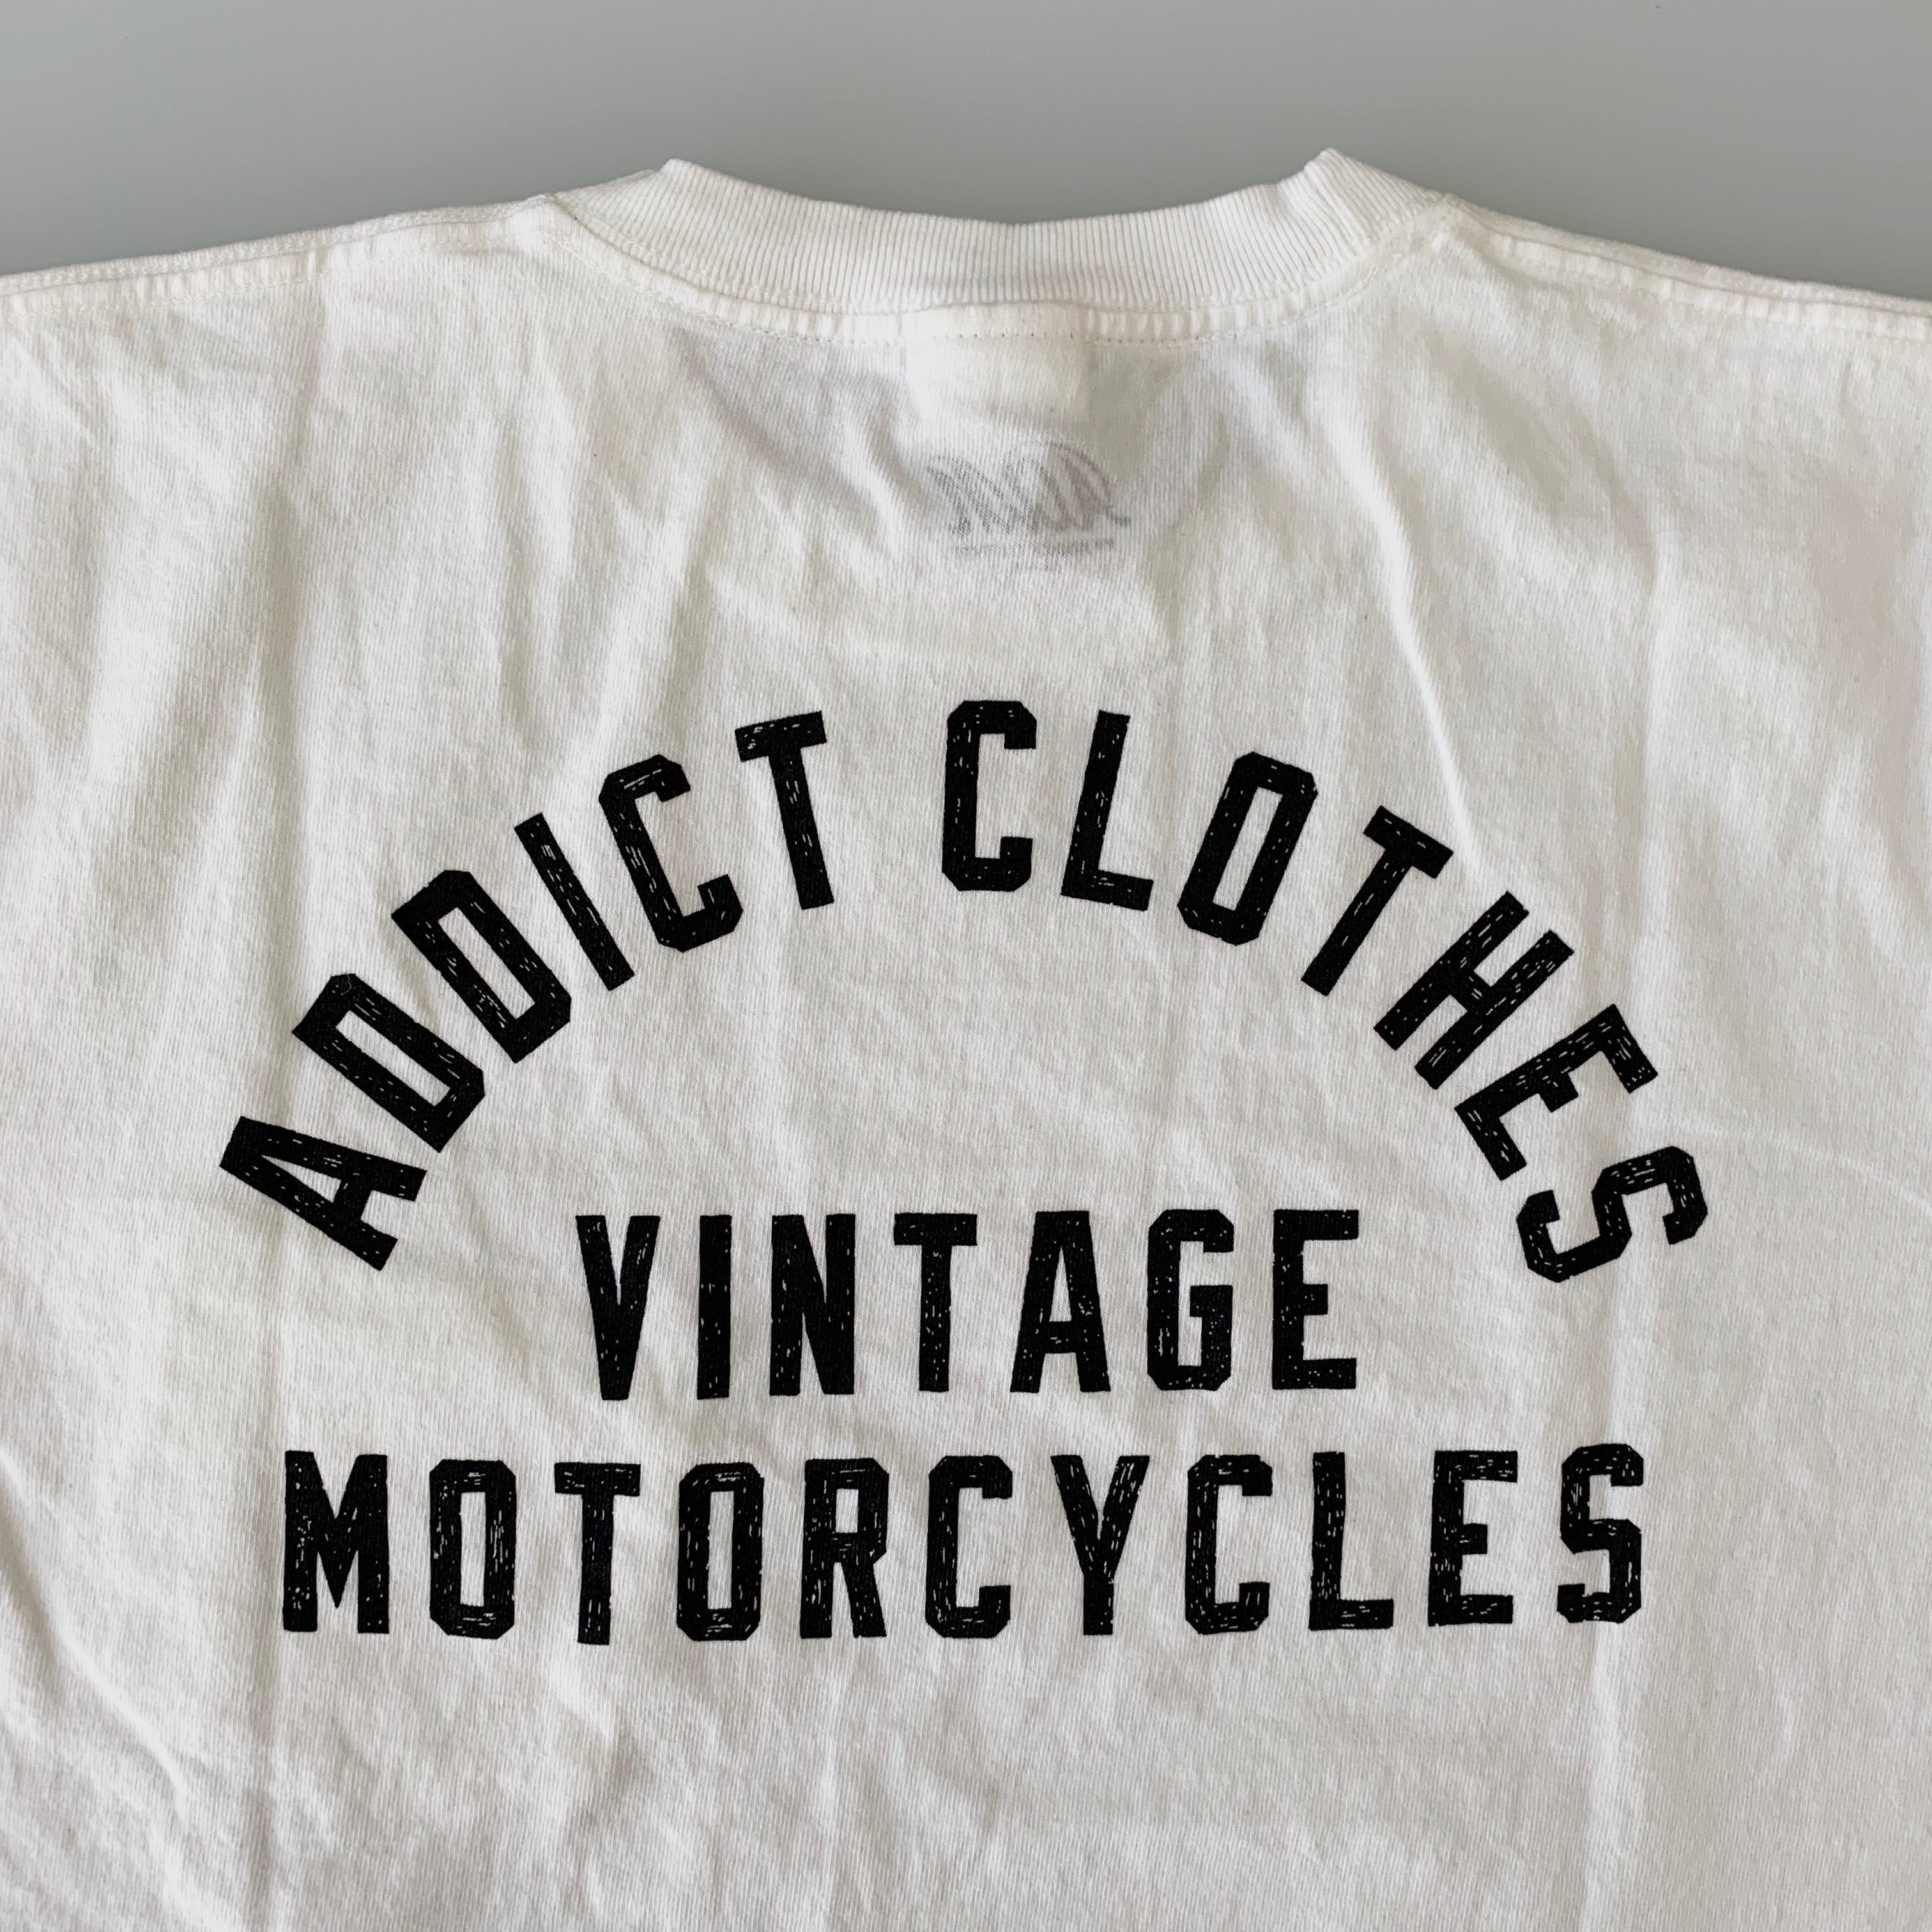 Addict Clothes Vintage Motorcycles - Slanted Pocket Logo Tee in White x Black